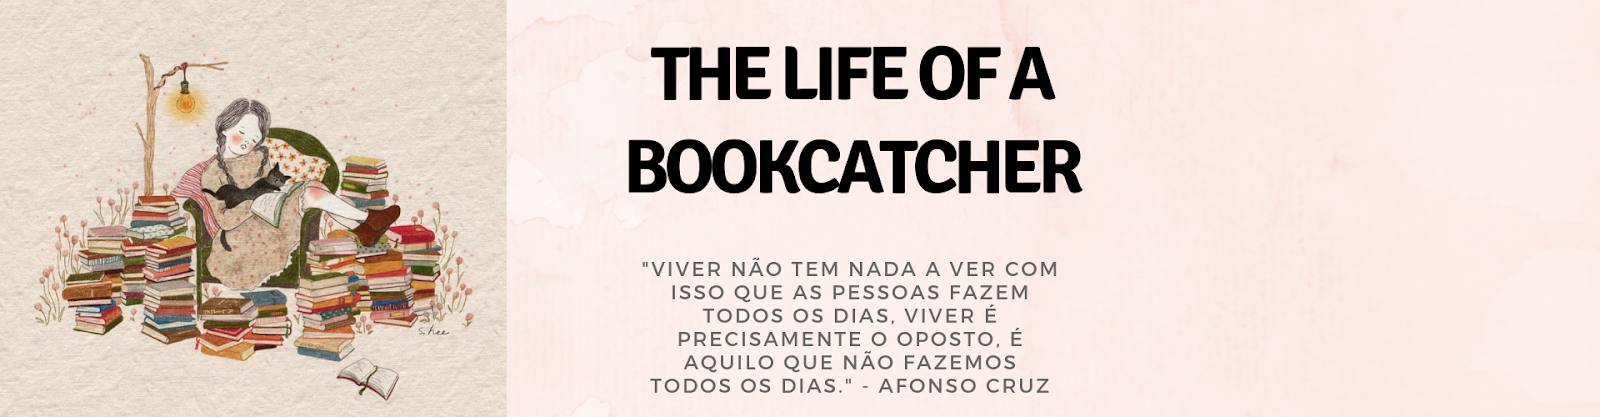 The Life of a Bookcatcher